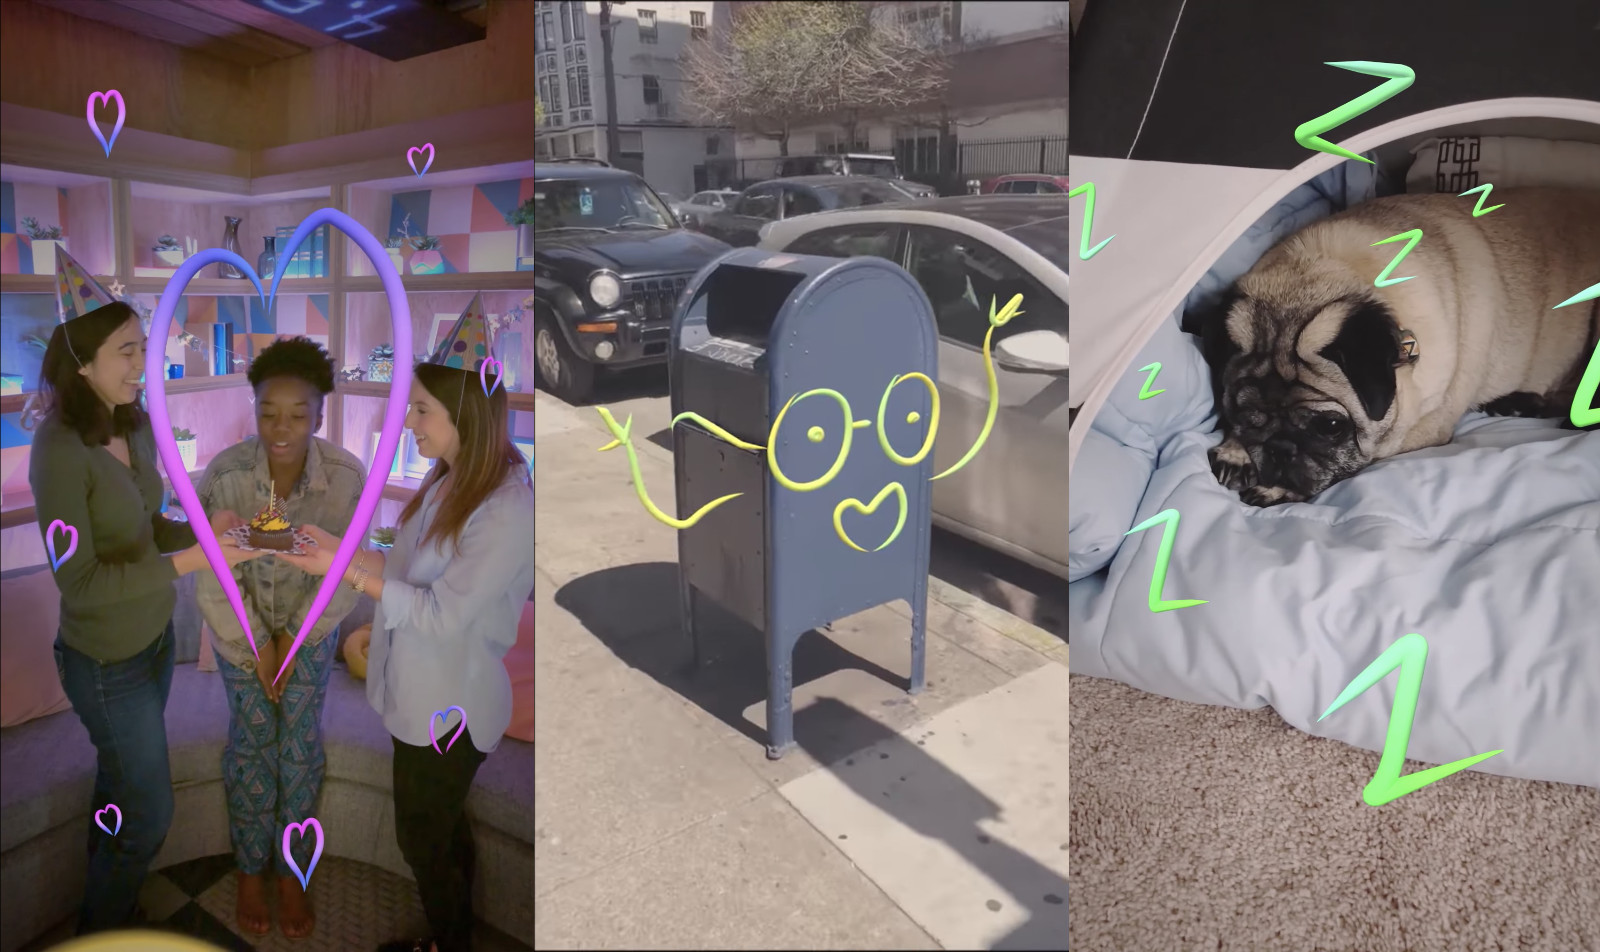 Facebook Stories will add AR doodles and Boomerang GIFs